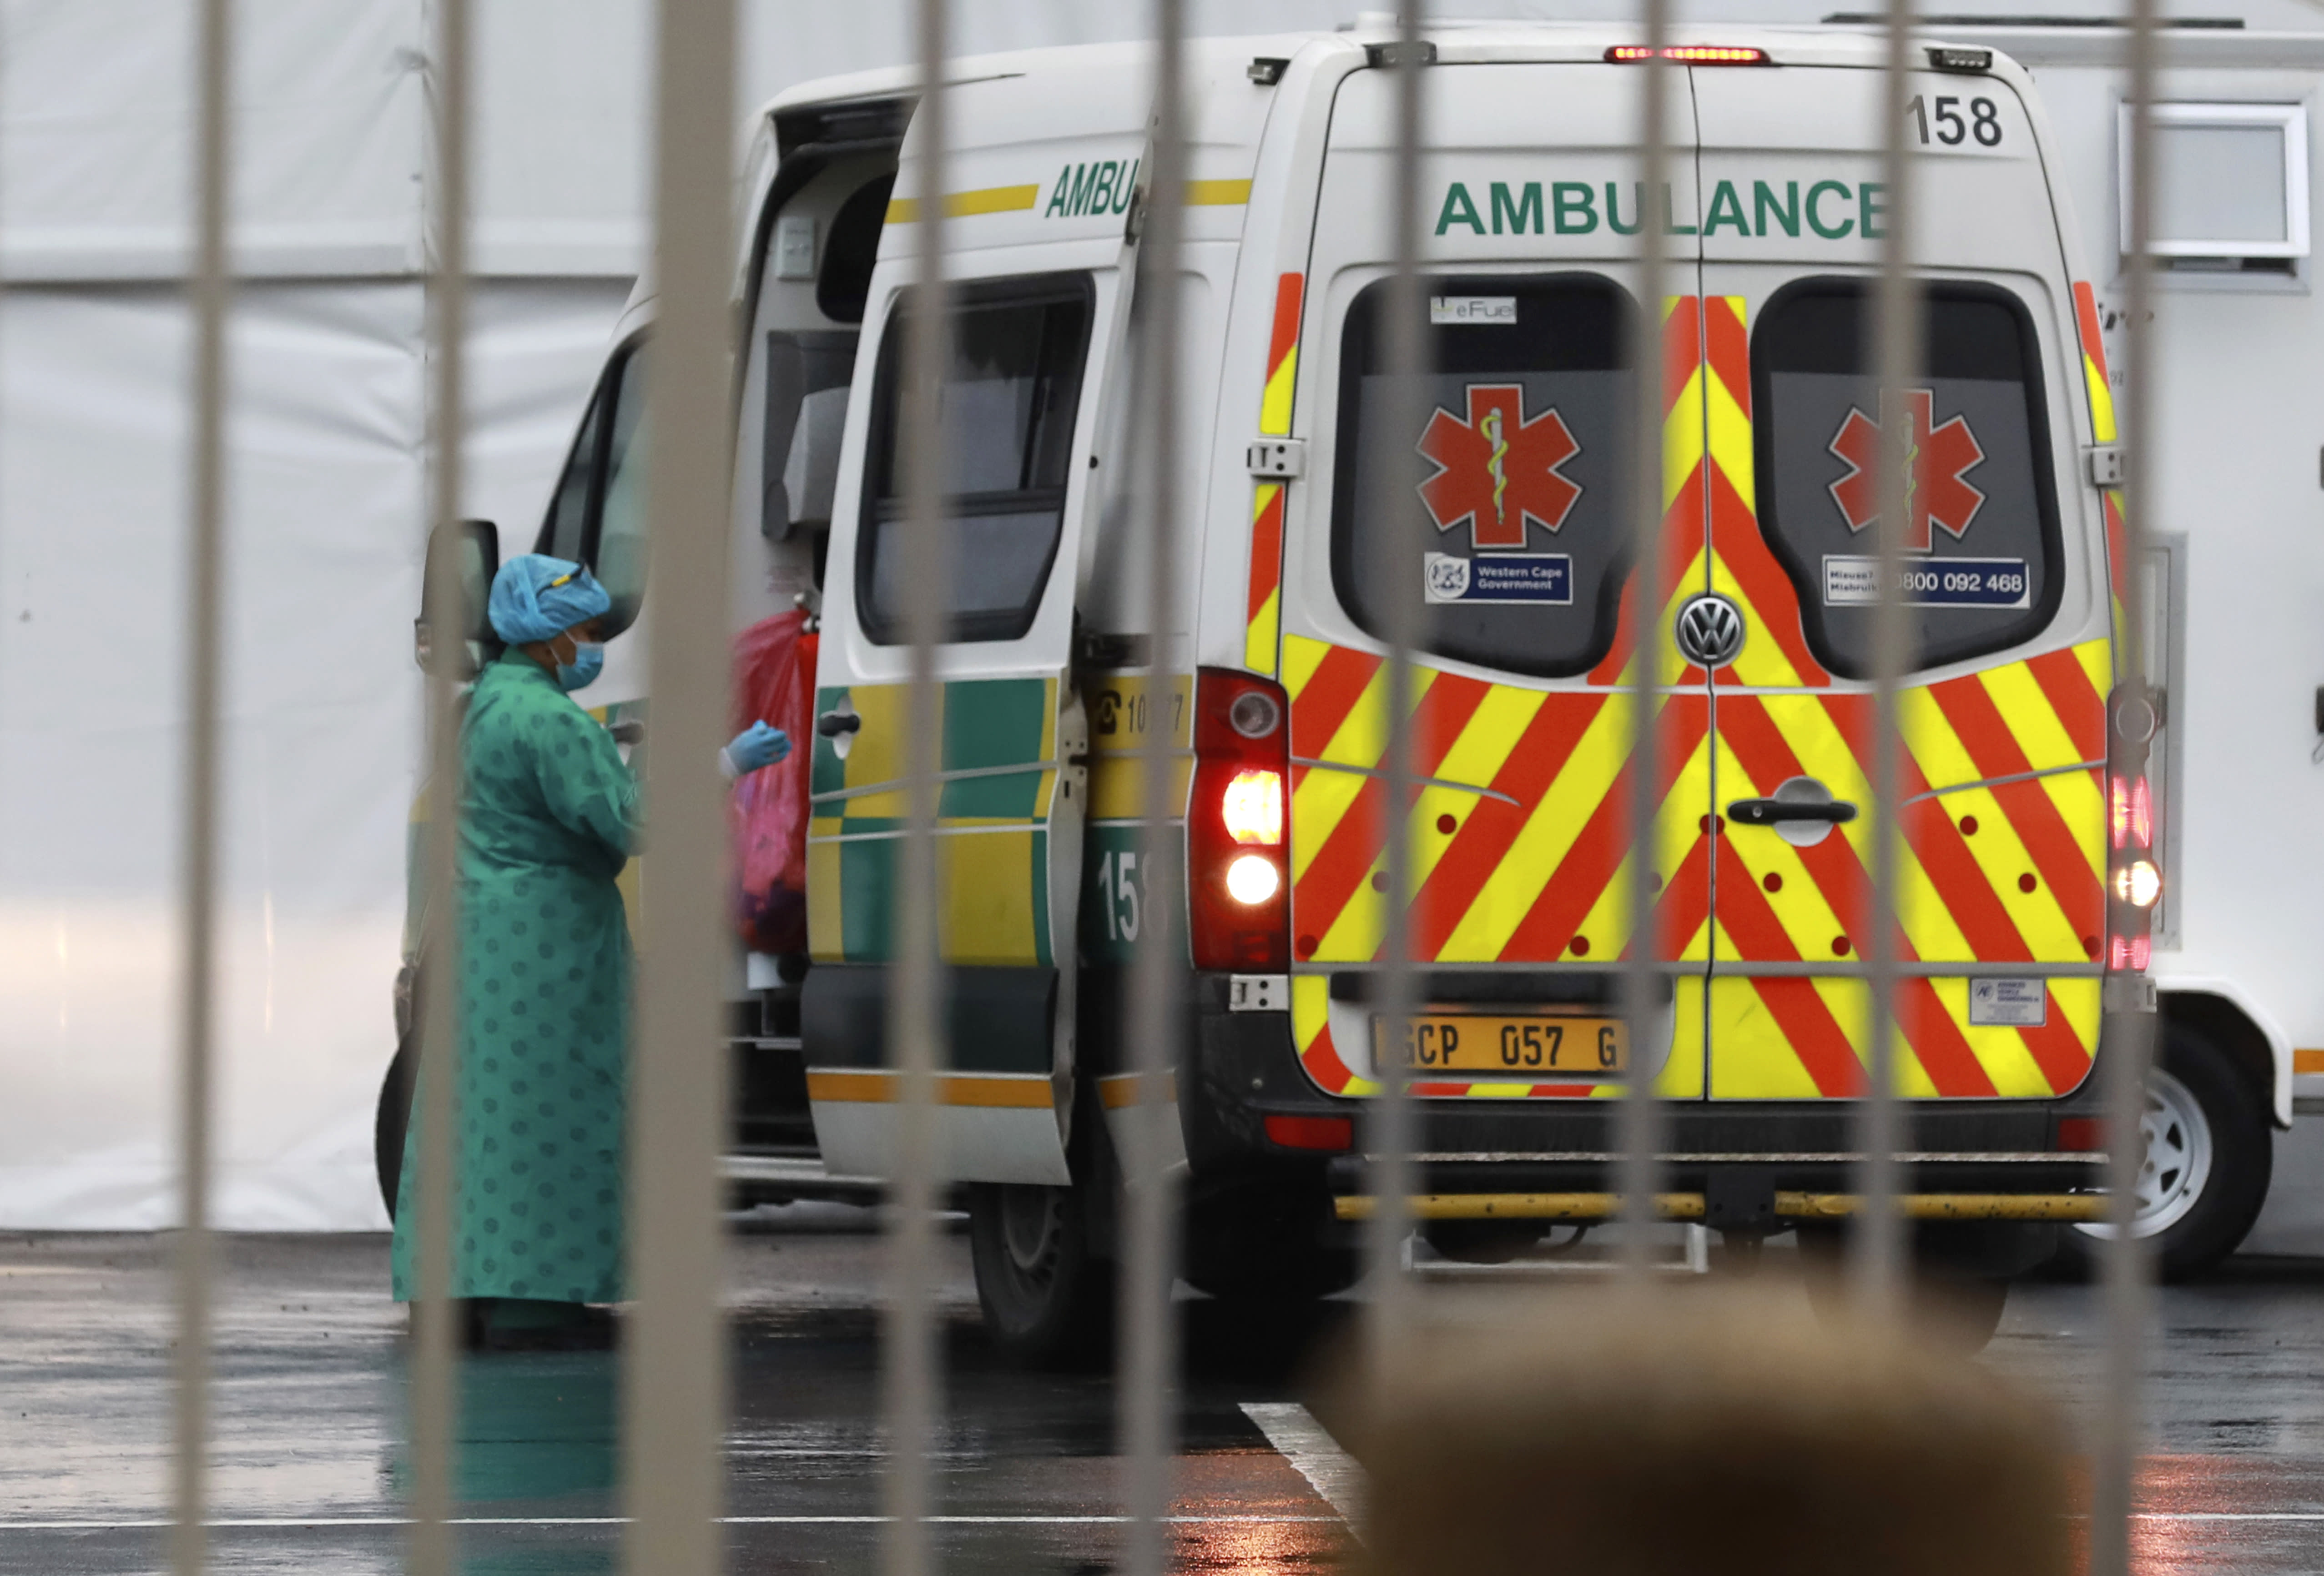 A health worker enters an ambulance outside the COVID-19 field hospital created in the International Convention Centre in Cape Town, South Africa, Monday, June 29, 2020. South Africa's reported coronavirus are surging. Its hospitals are now bracing for an onslaught of patients, setting up temporary wards and hoping advances in treatment will help the country's health facilities from becoming overwhelmed. (AP Photo/Nardus Engelbrecht)